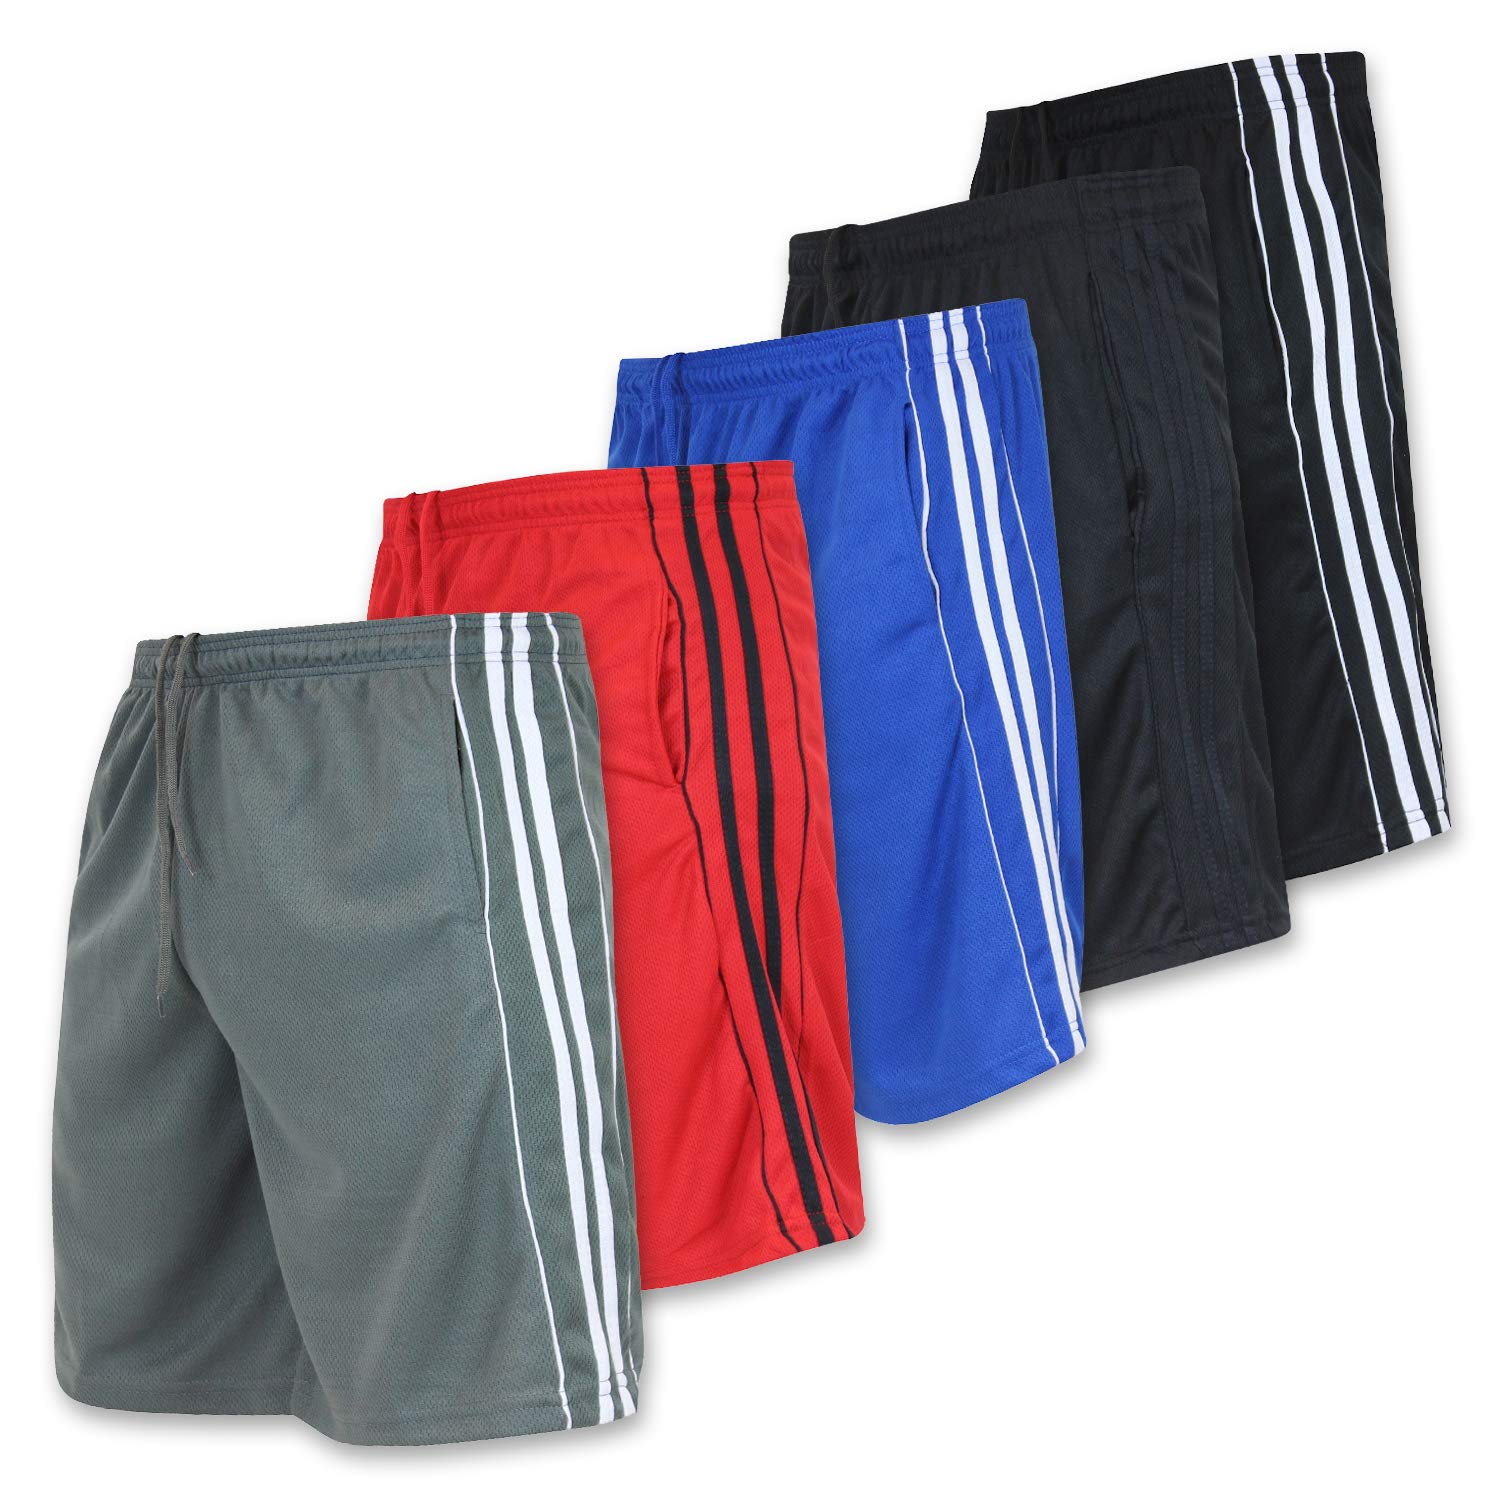 Men's Mesh Active Athletic Basketball Essentials Performance Gym Workout Clothes Sport Shorts Quick Dry - Set 5-5 Pack, S